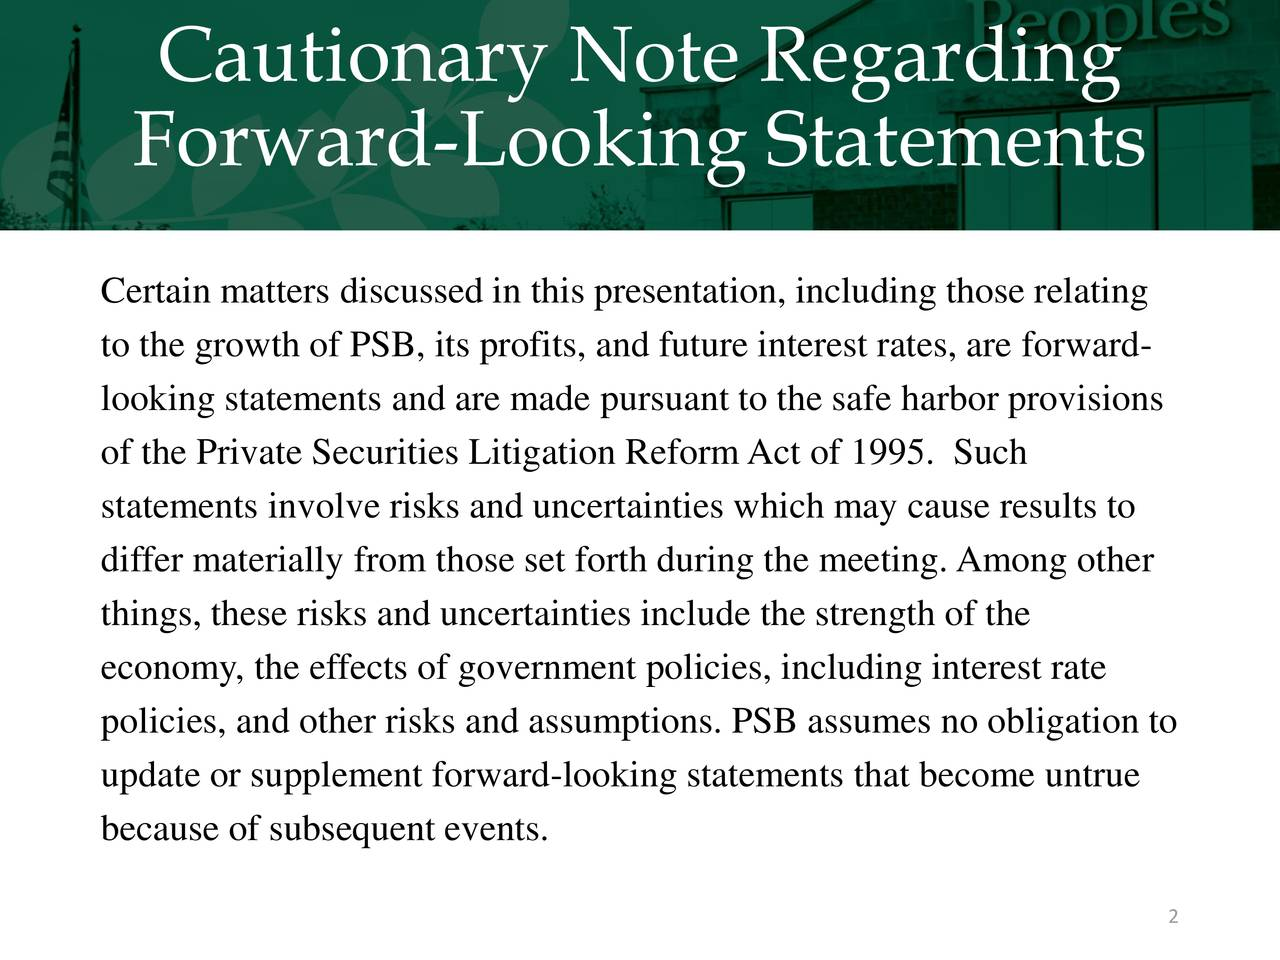 Forward-Looking Statements Certain matters discussed in this presentation, including those relating to the growth of PSB, its profits, and future interest rates, are forward- looking statements and are made pursuant to the safe harbor provisions of the Private Securities Litigation ReformAct of 1995. Such statements involve risks and uncertainties which may cause results to differ materially from those set forth during the meeting. Among other things, these risks and uncertainties include the strength of the economy, the effects of government policies, including interest rate policies, and other risks and assumptions. PSB assumes no obligation to update or supplement forward-looking statements that become untrue because of subsequent events. 2